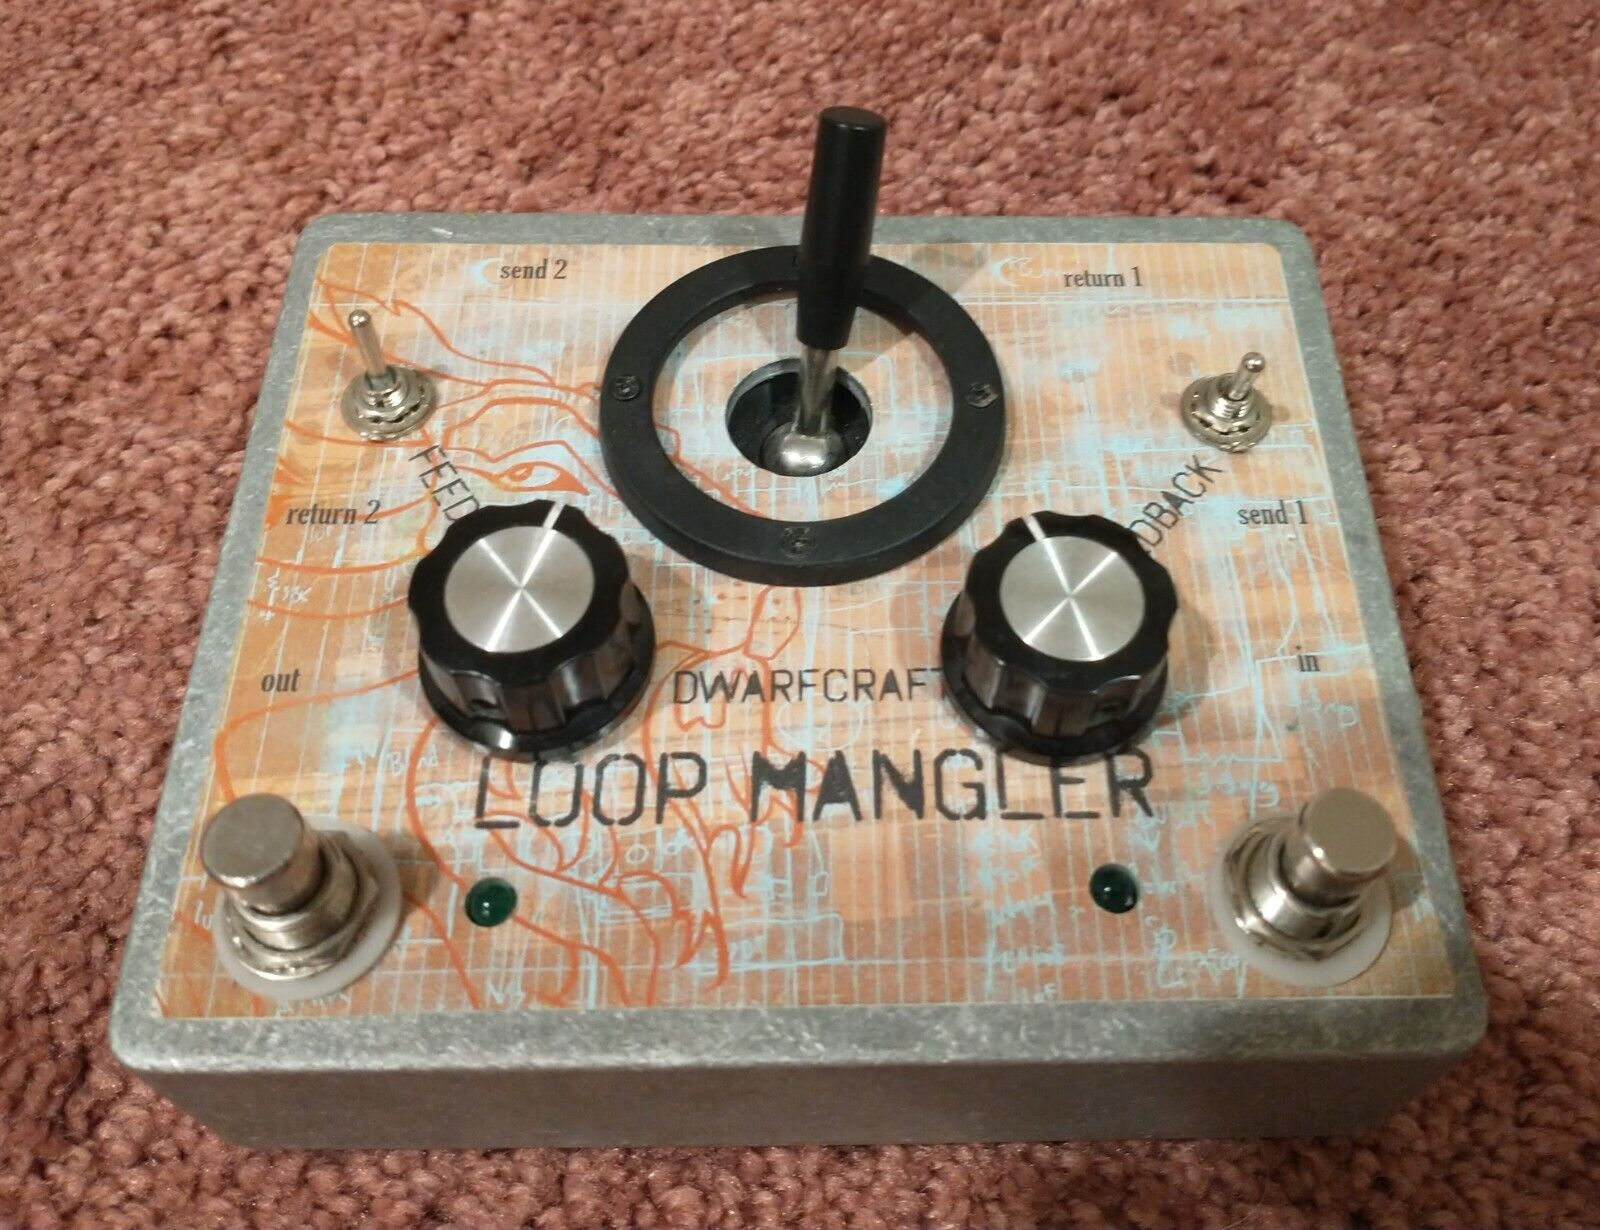 DWARFCRAFT DEVICES RARE LOOP MANGLER - AC - Double Fdback Looper Free Ship - $179.00